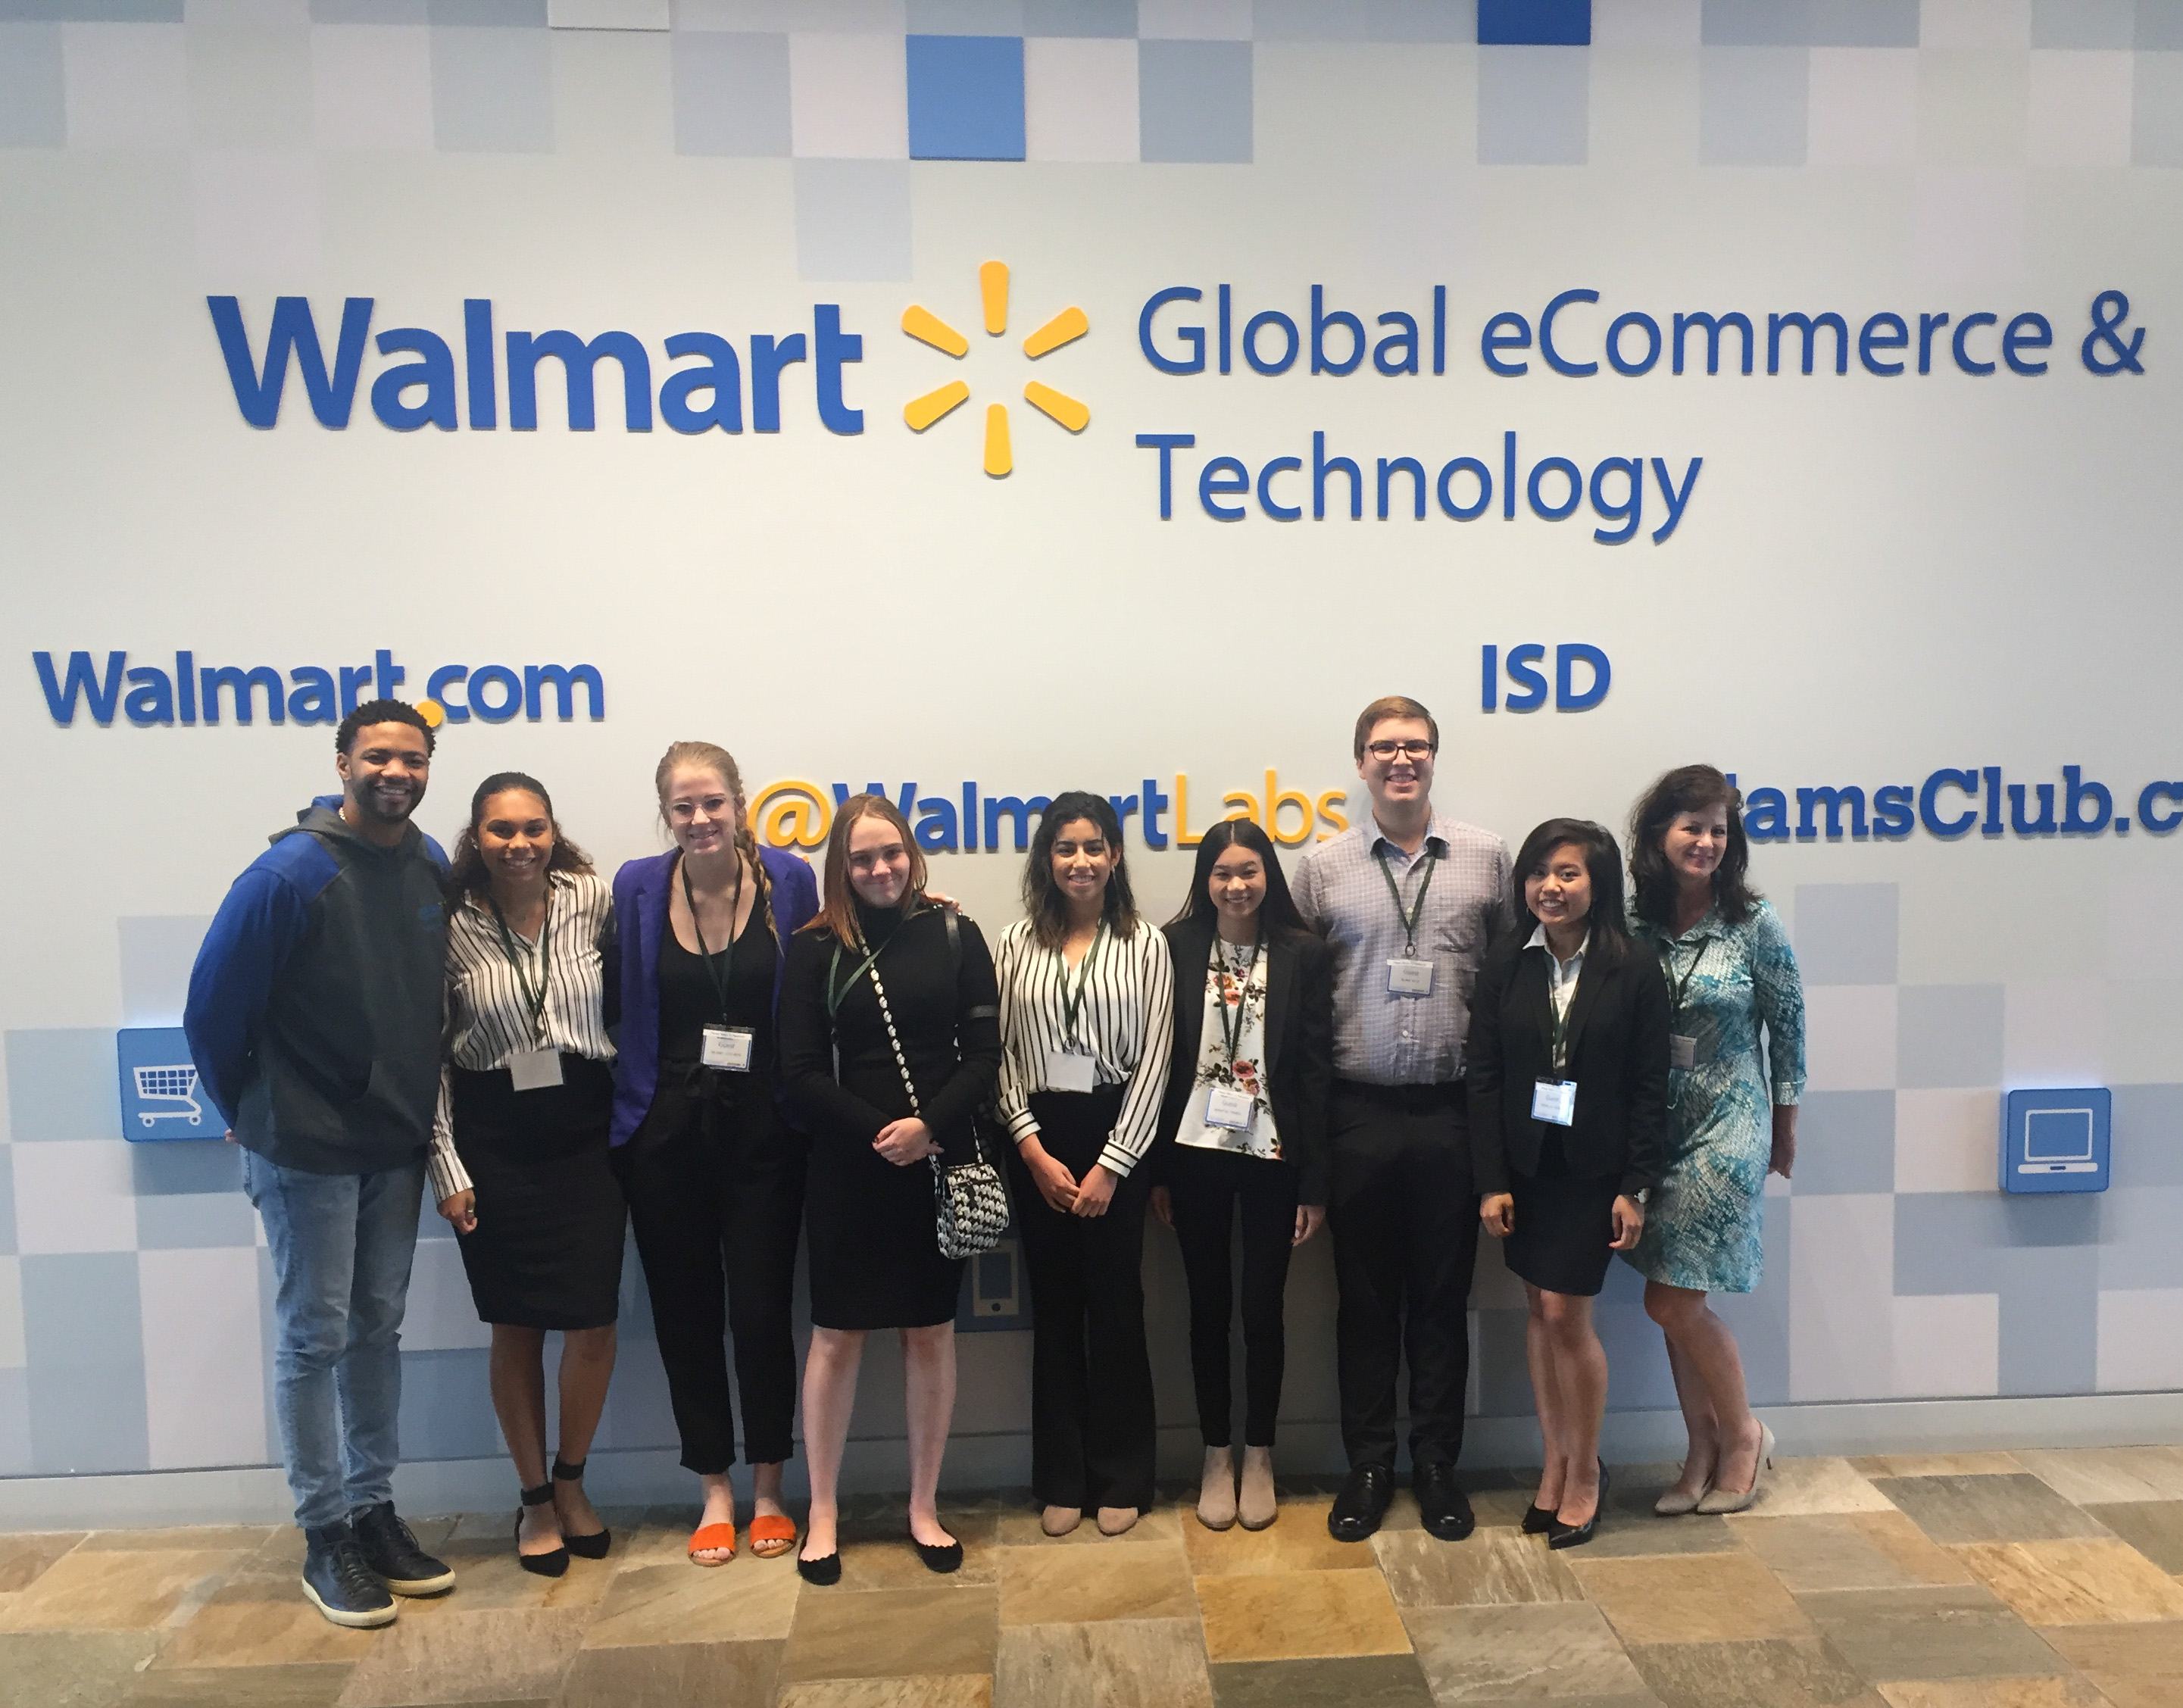 University of North Texas students and Linda Mihalick visiting Walmart.com headquarters